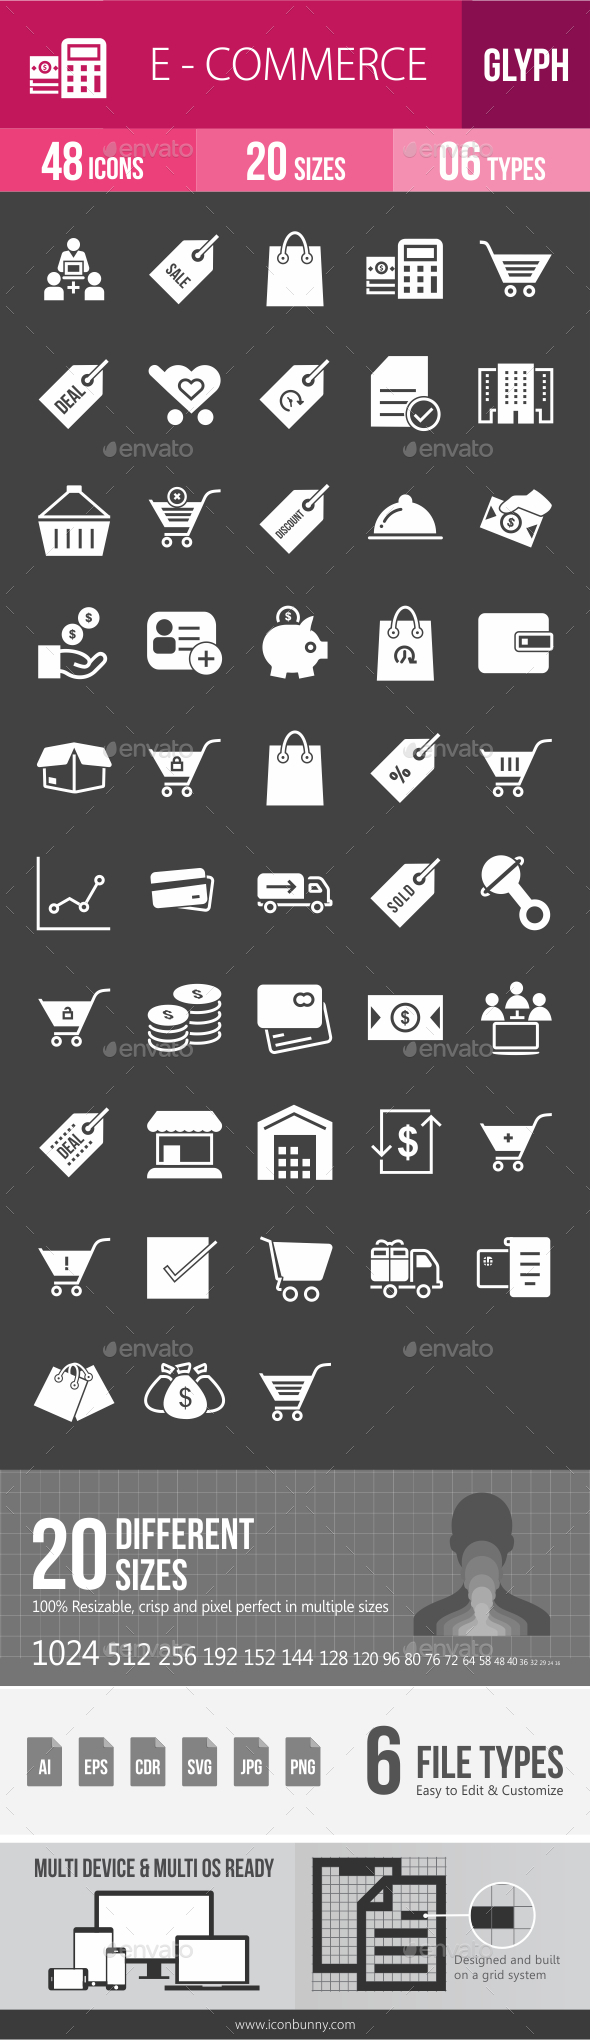 Ecommerce Glyph Inverted Icons - Icons